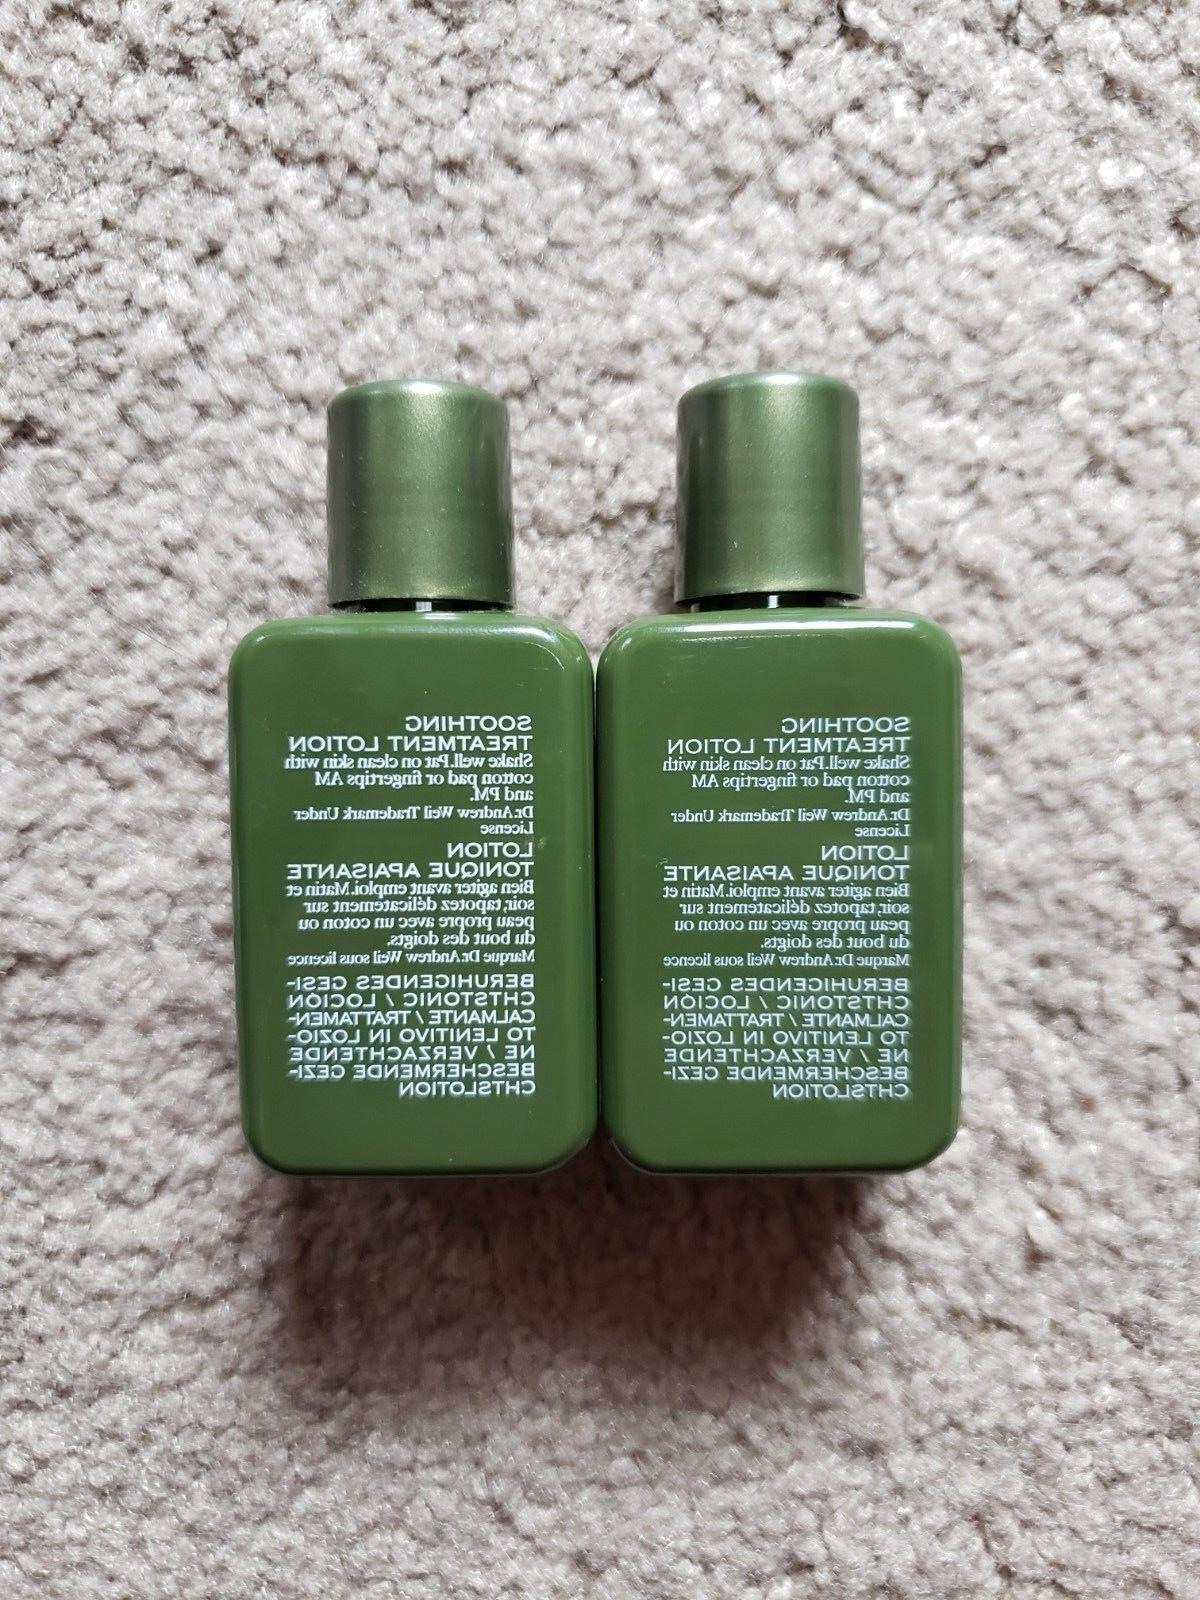 Dr. Mushroom Soothing Lotion & Relief